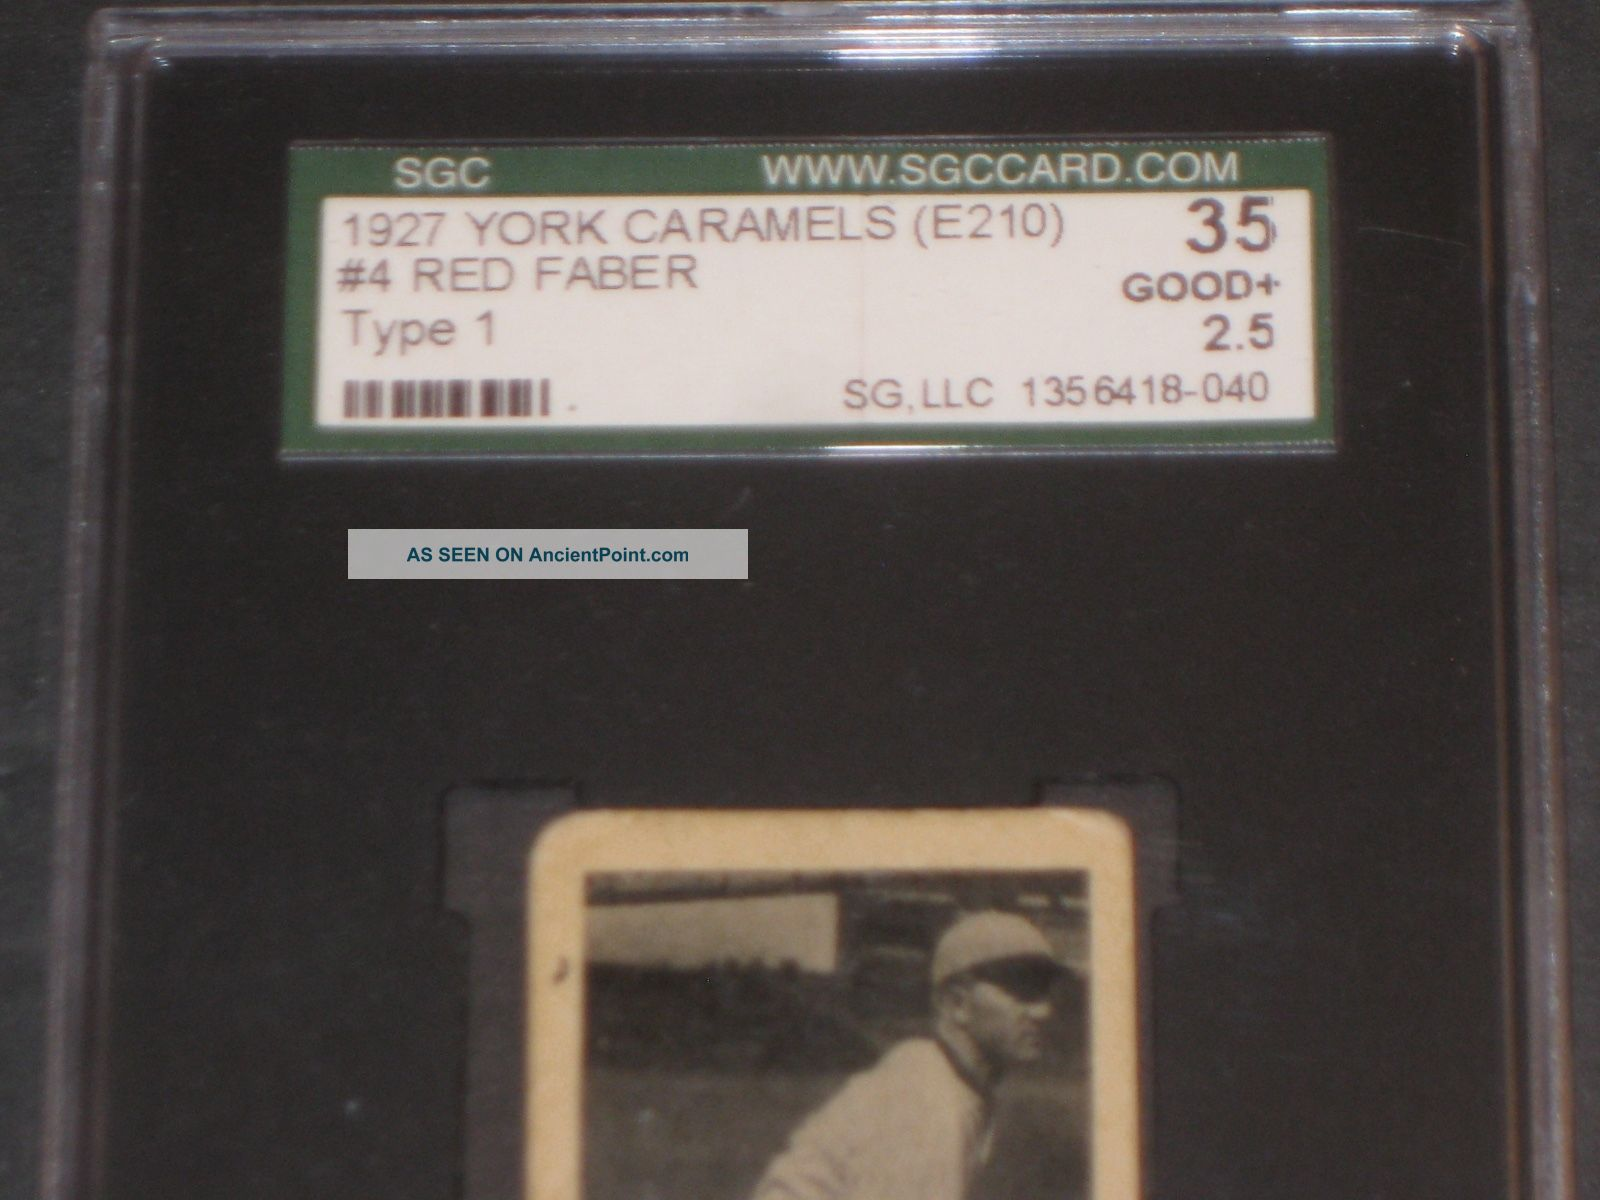 1927 E210 Red Faber York Caramel Baseball Card Sgc 35 Good,  2.  5 Antique Trading Other Antiquities photo